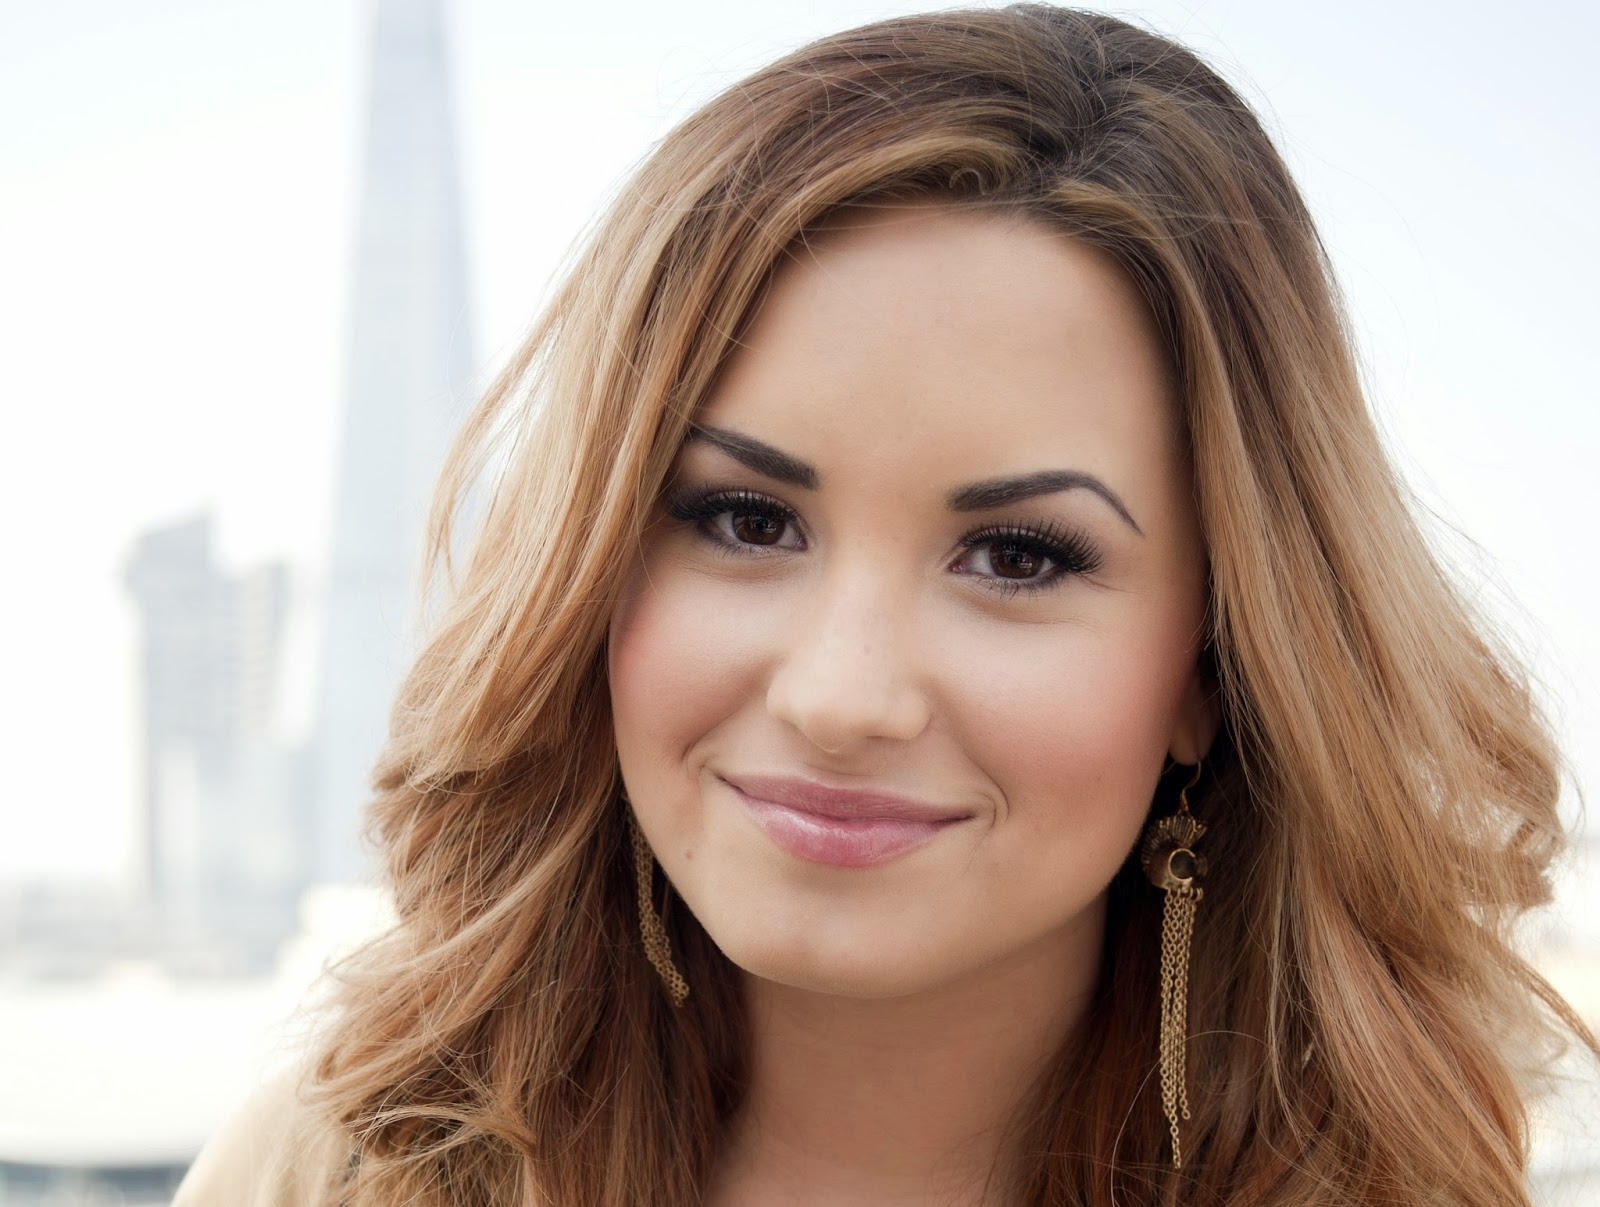 Demi Lovato Hd Wallpapers Free Download